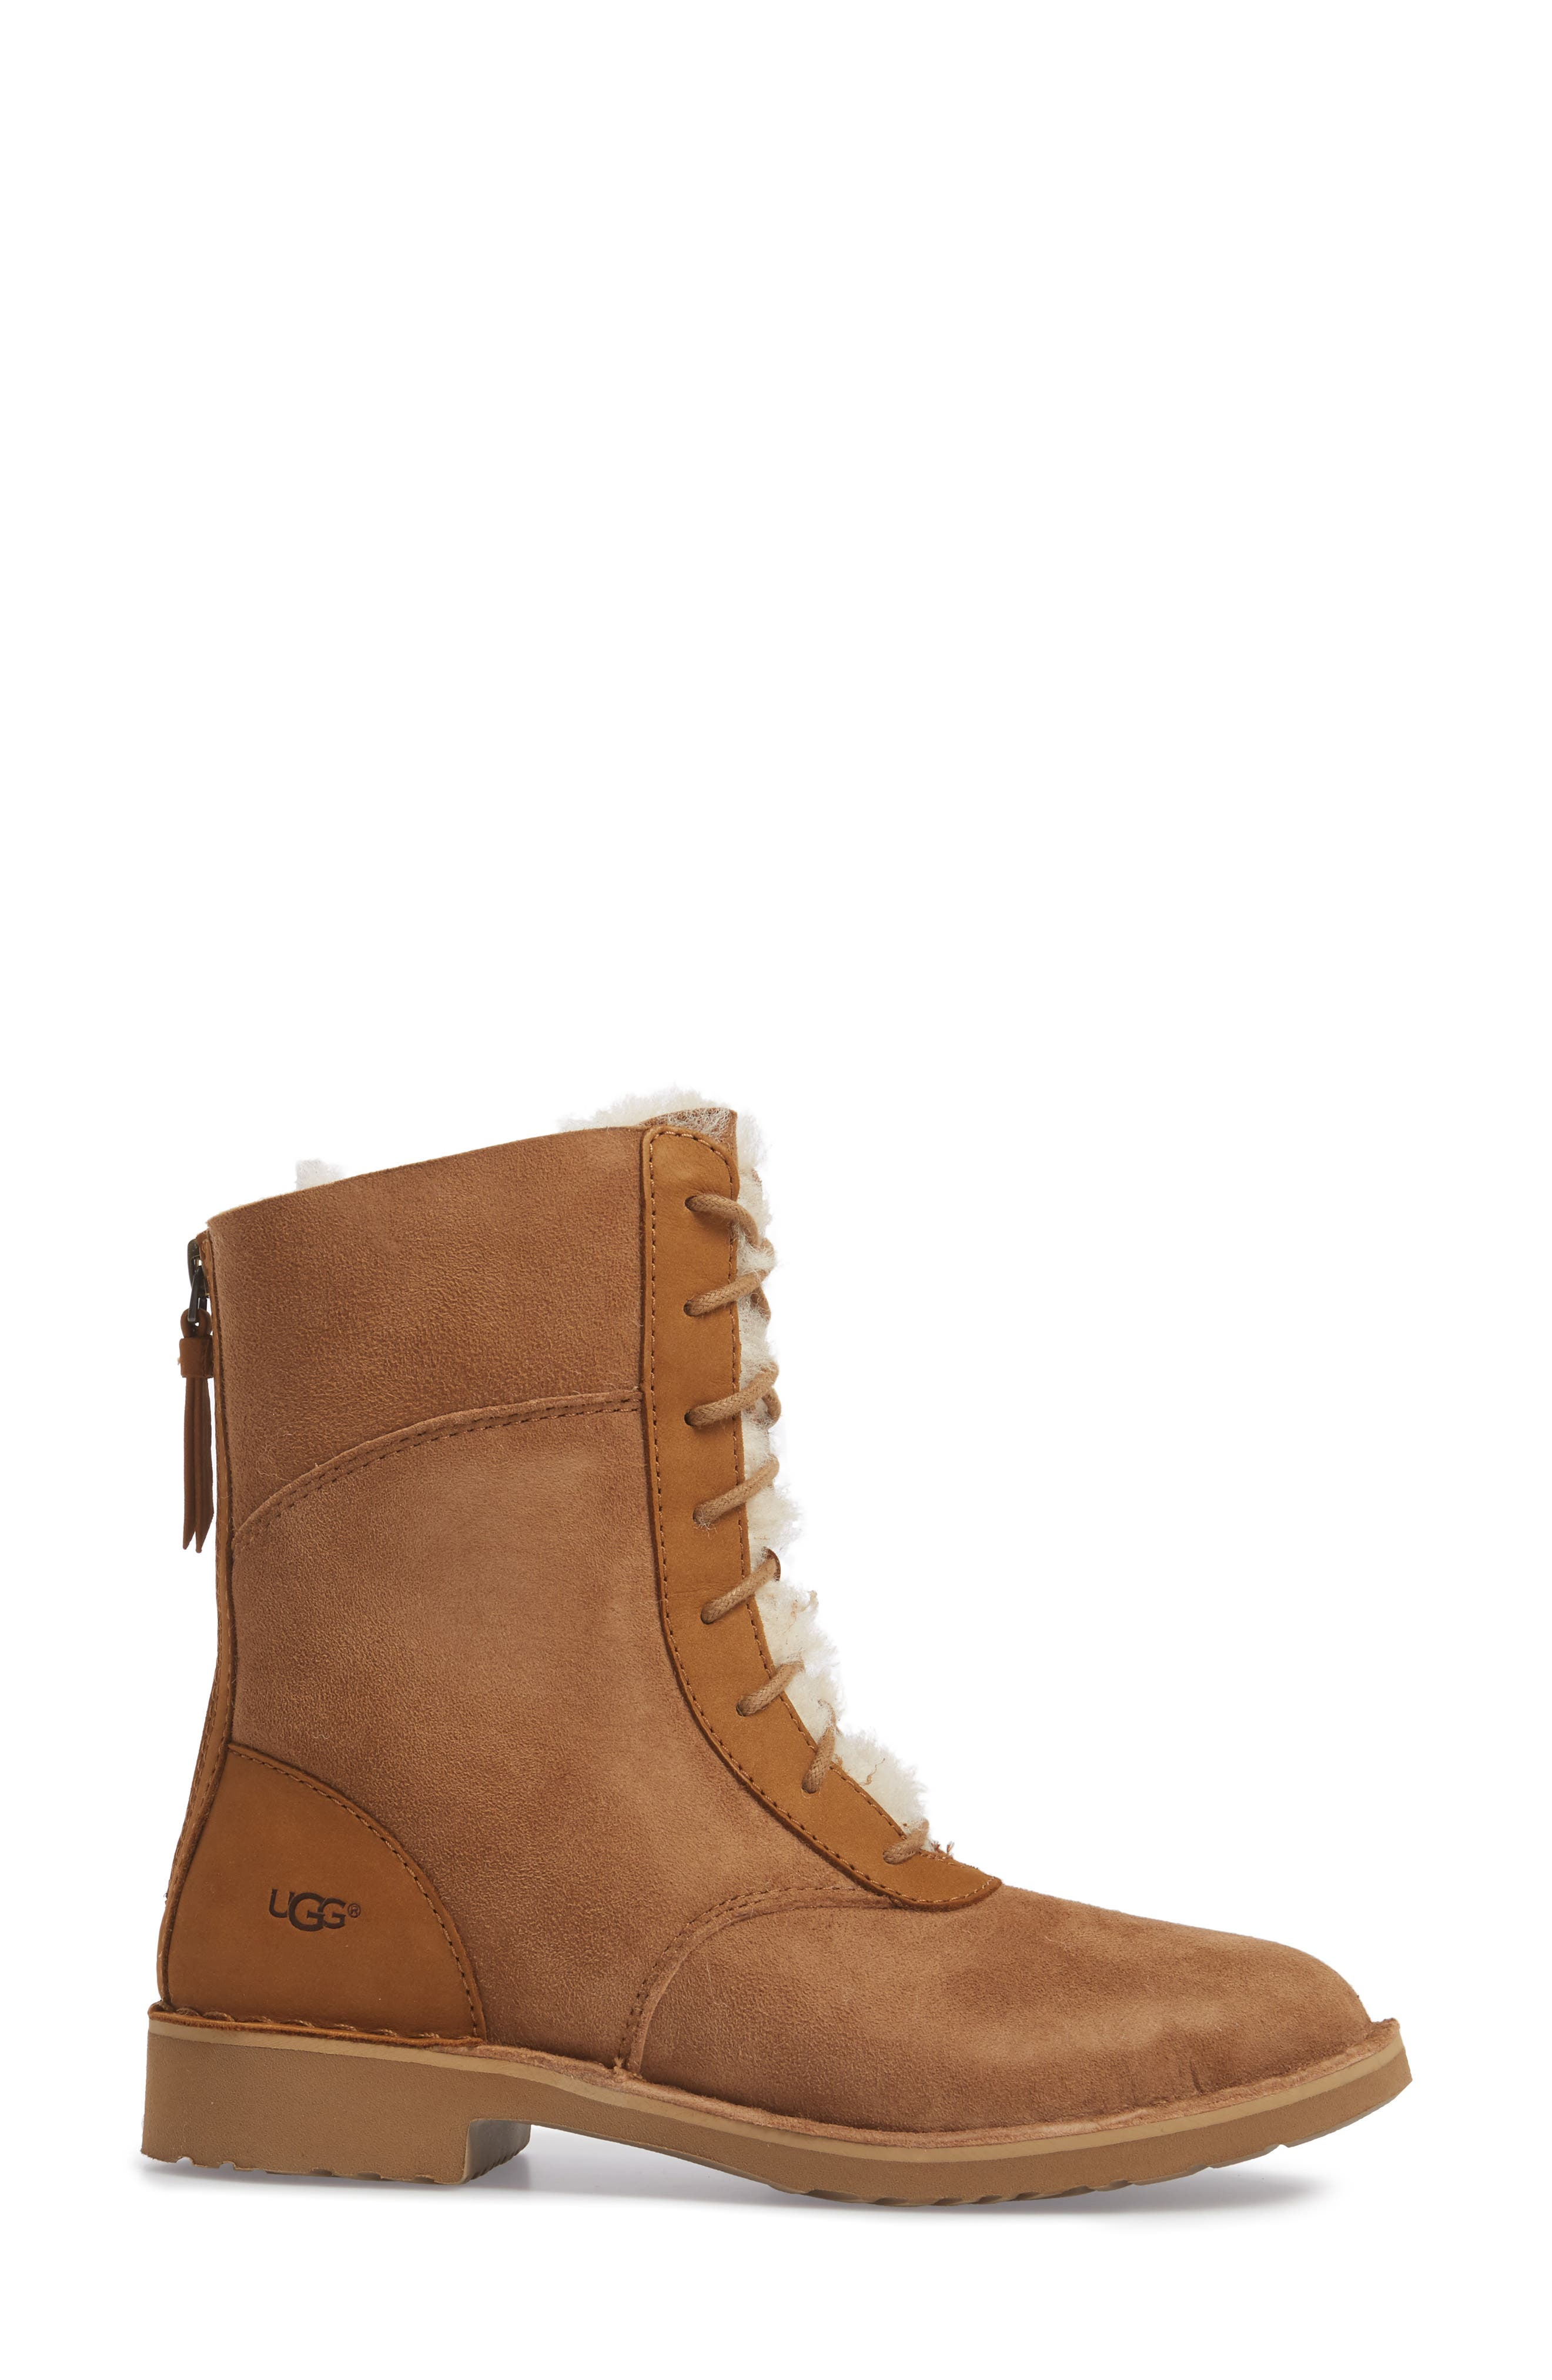 Daney Lace-Up Boot,                             Alternate thumbnail 3, color,                             Chestnut Suede